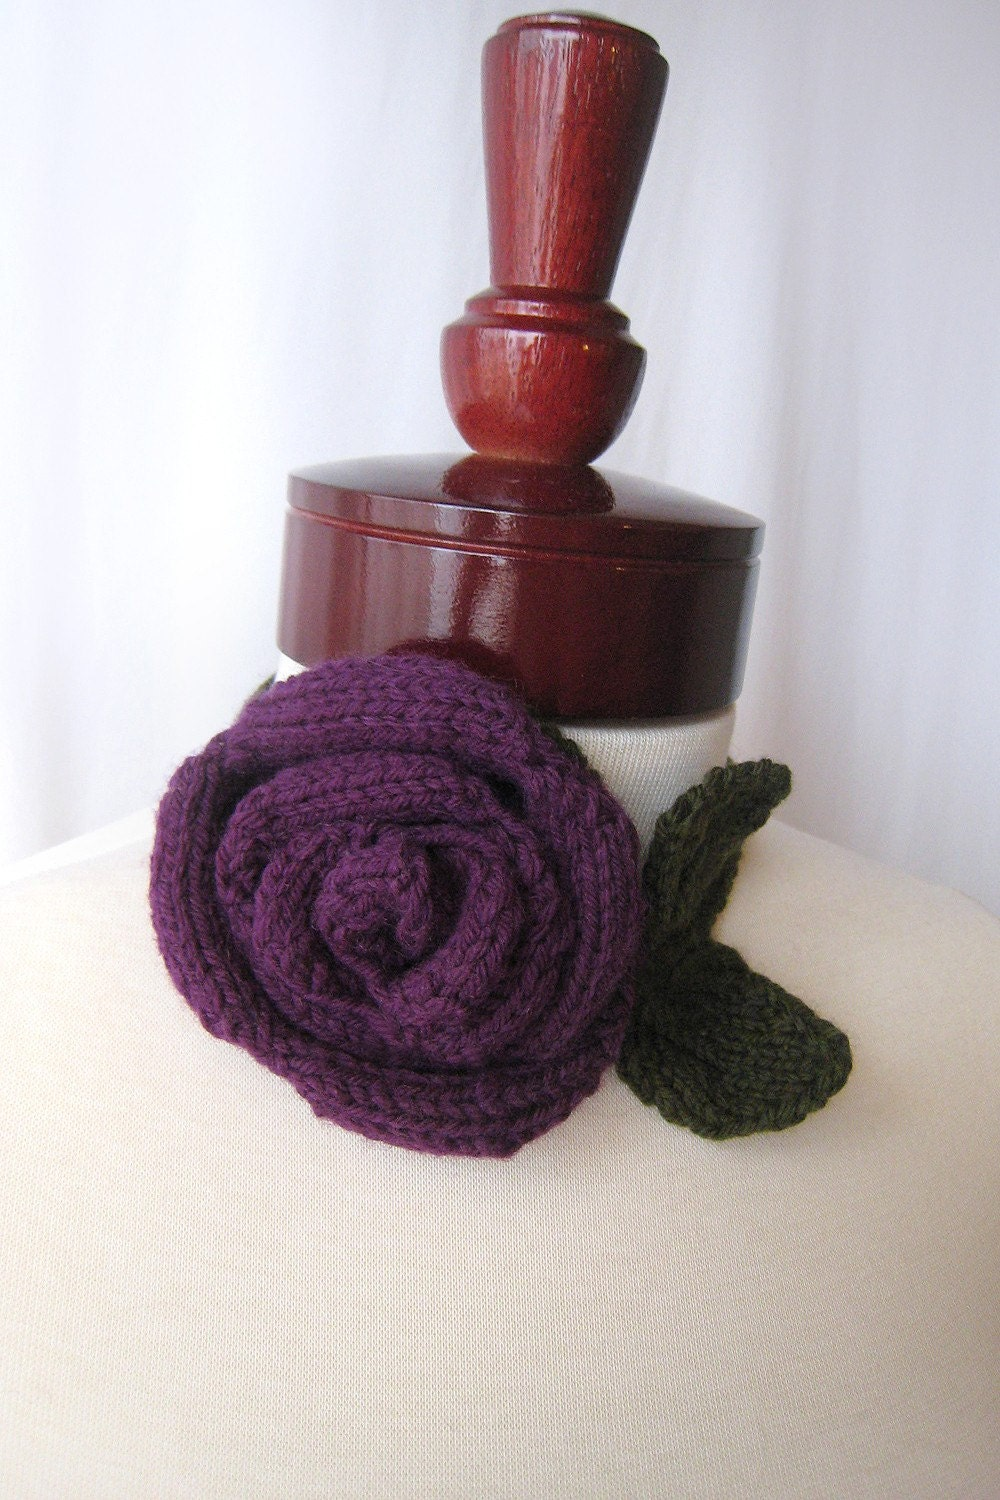 <br />Blooming Plum Wool Rose with Evergreen Leaves and Ties